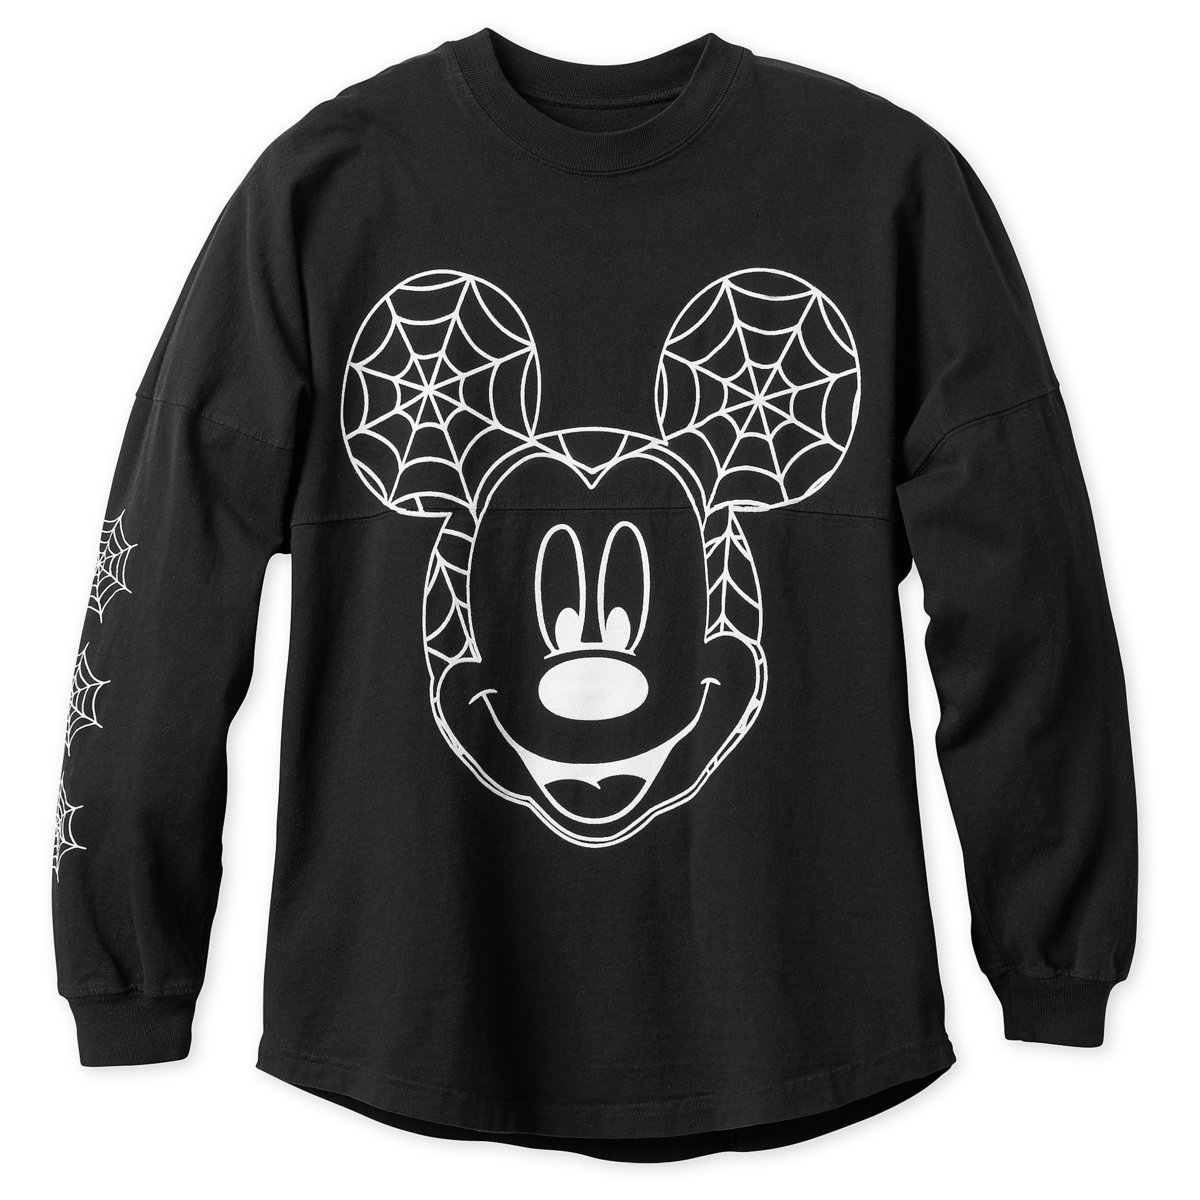 a755b232 Product Image of Mickey Mouse Halloween Spirit Jersey for Adults # 1